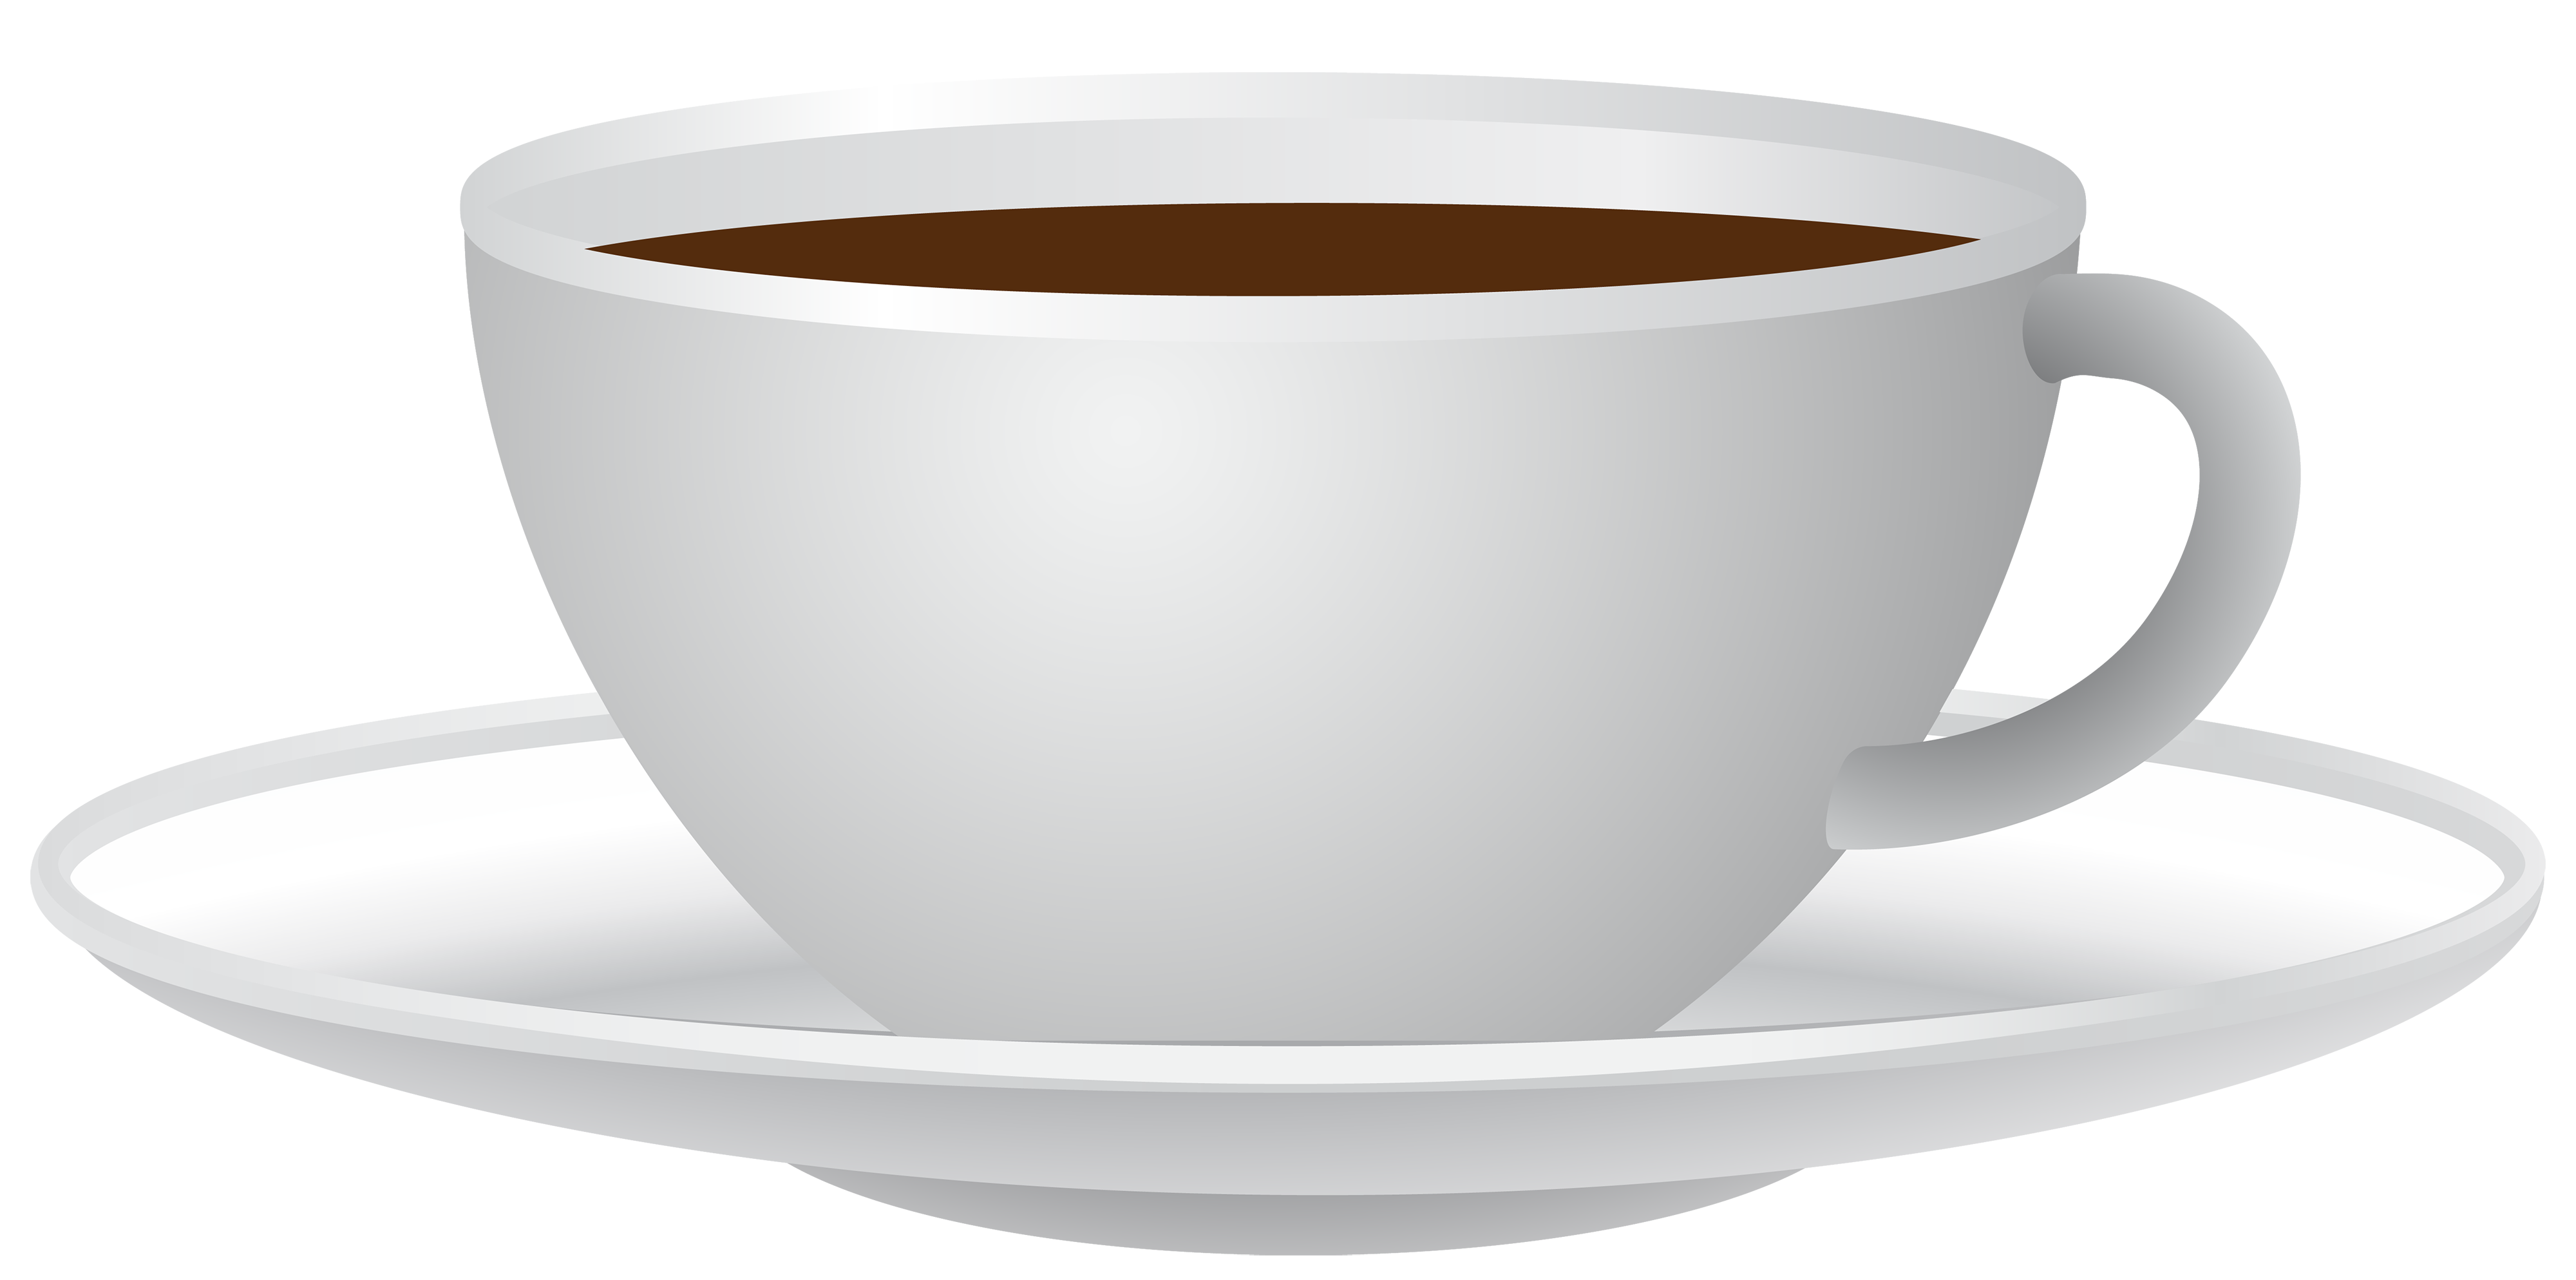 Clock clipart coffee. Cup png best web